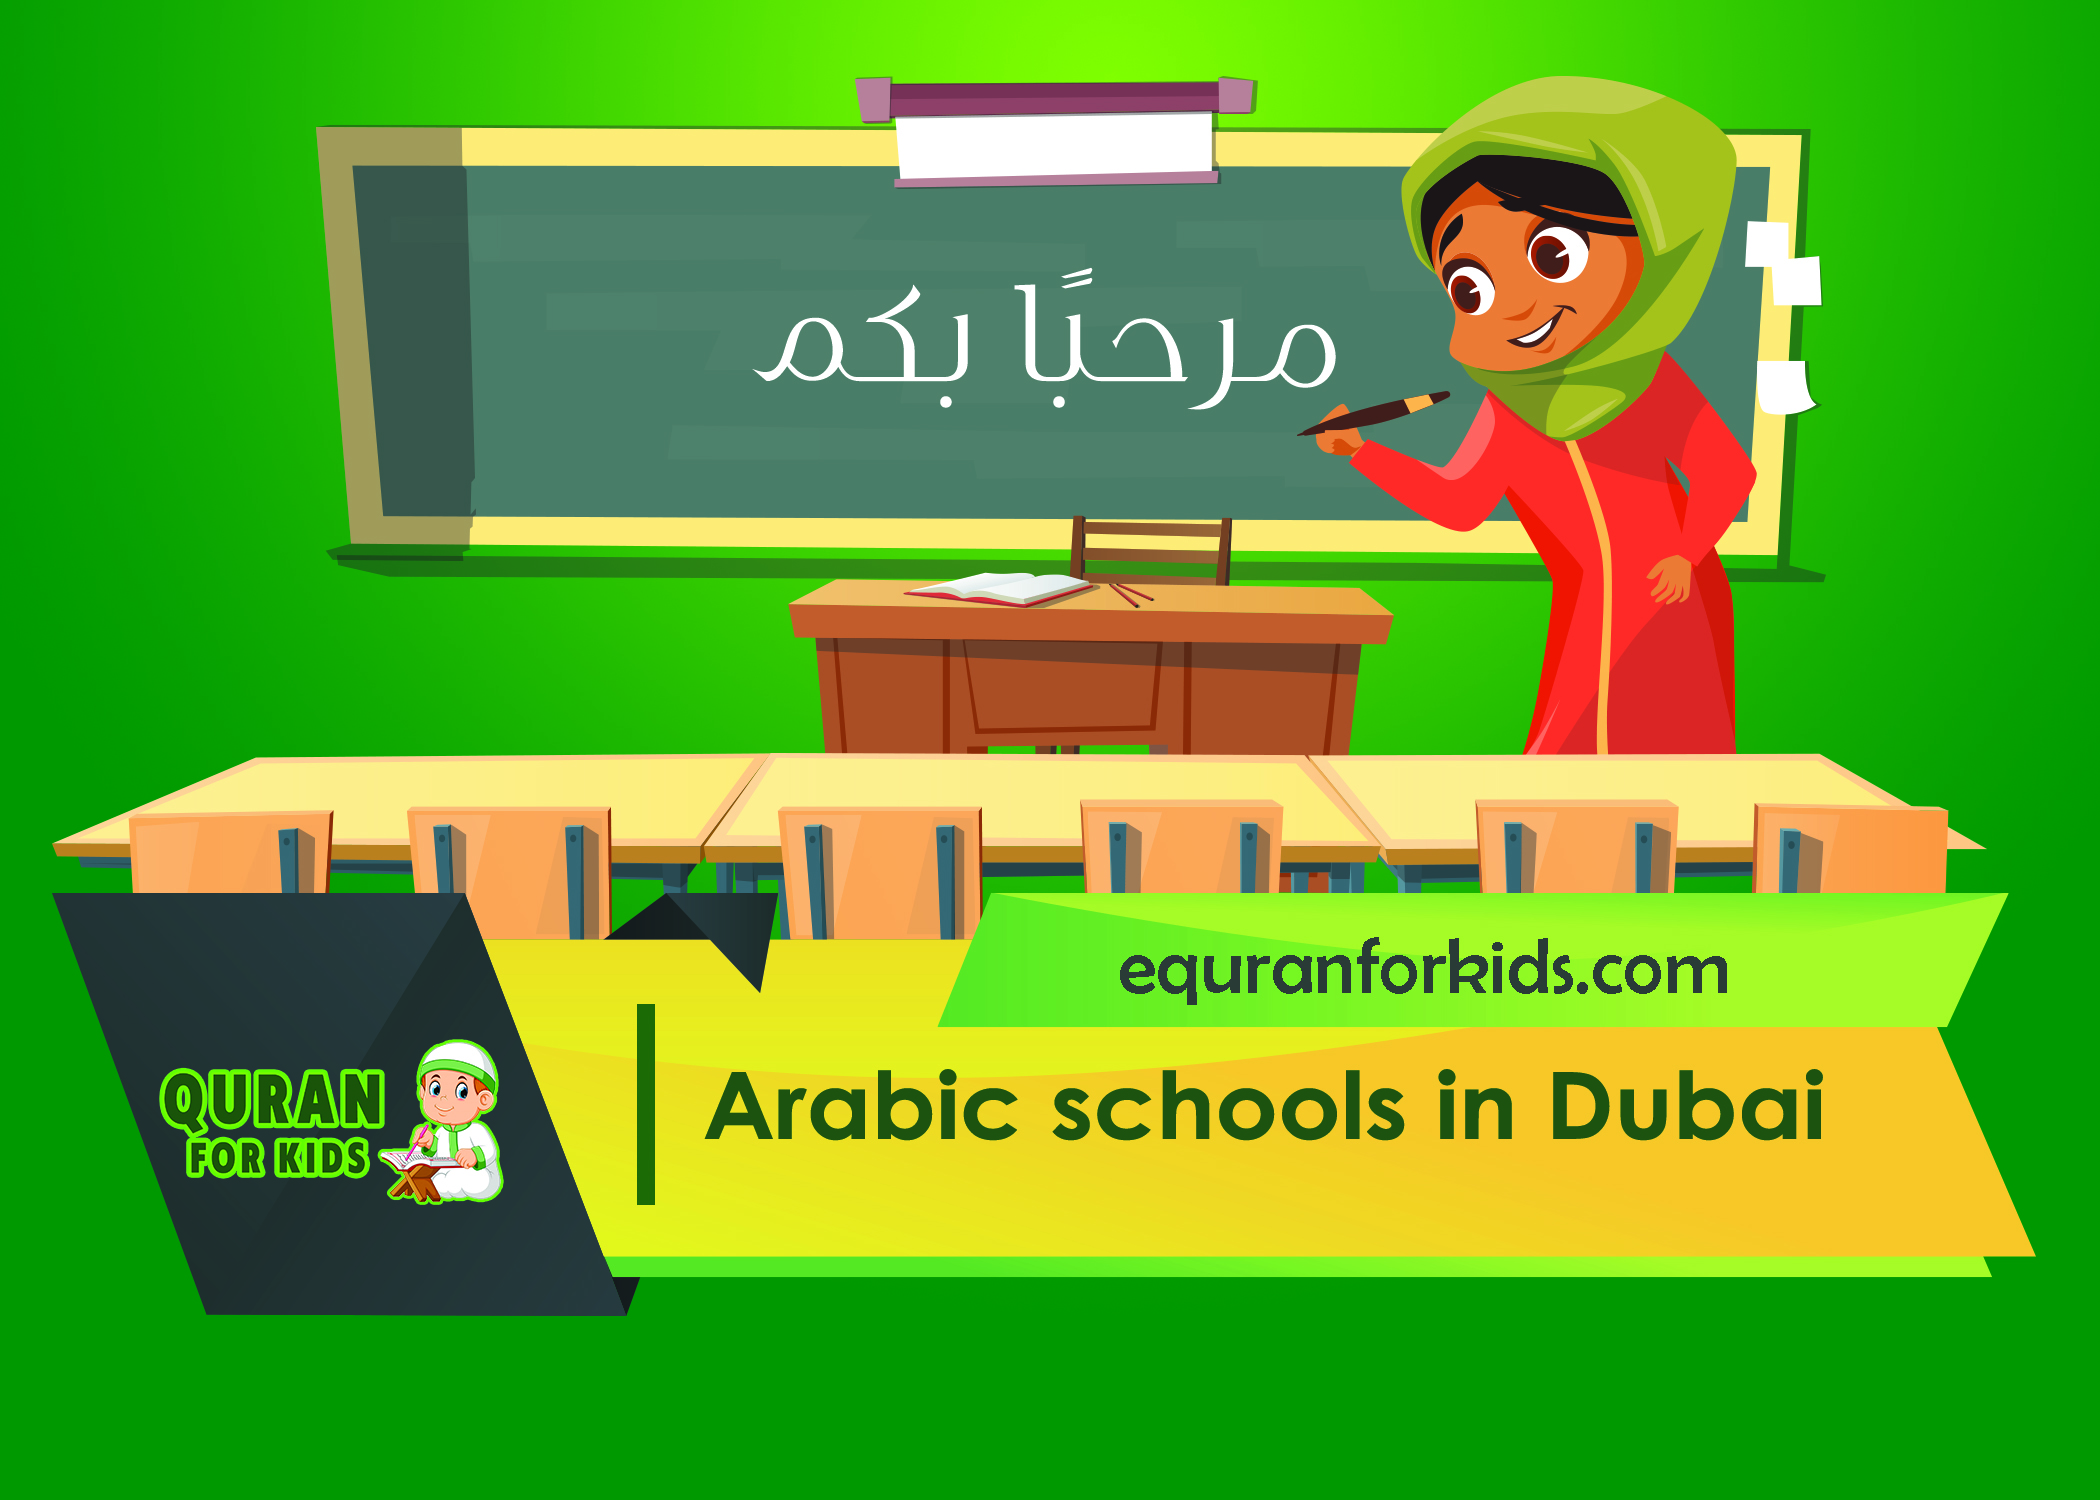 Arabic schools in Dubai